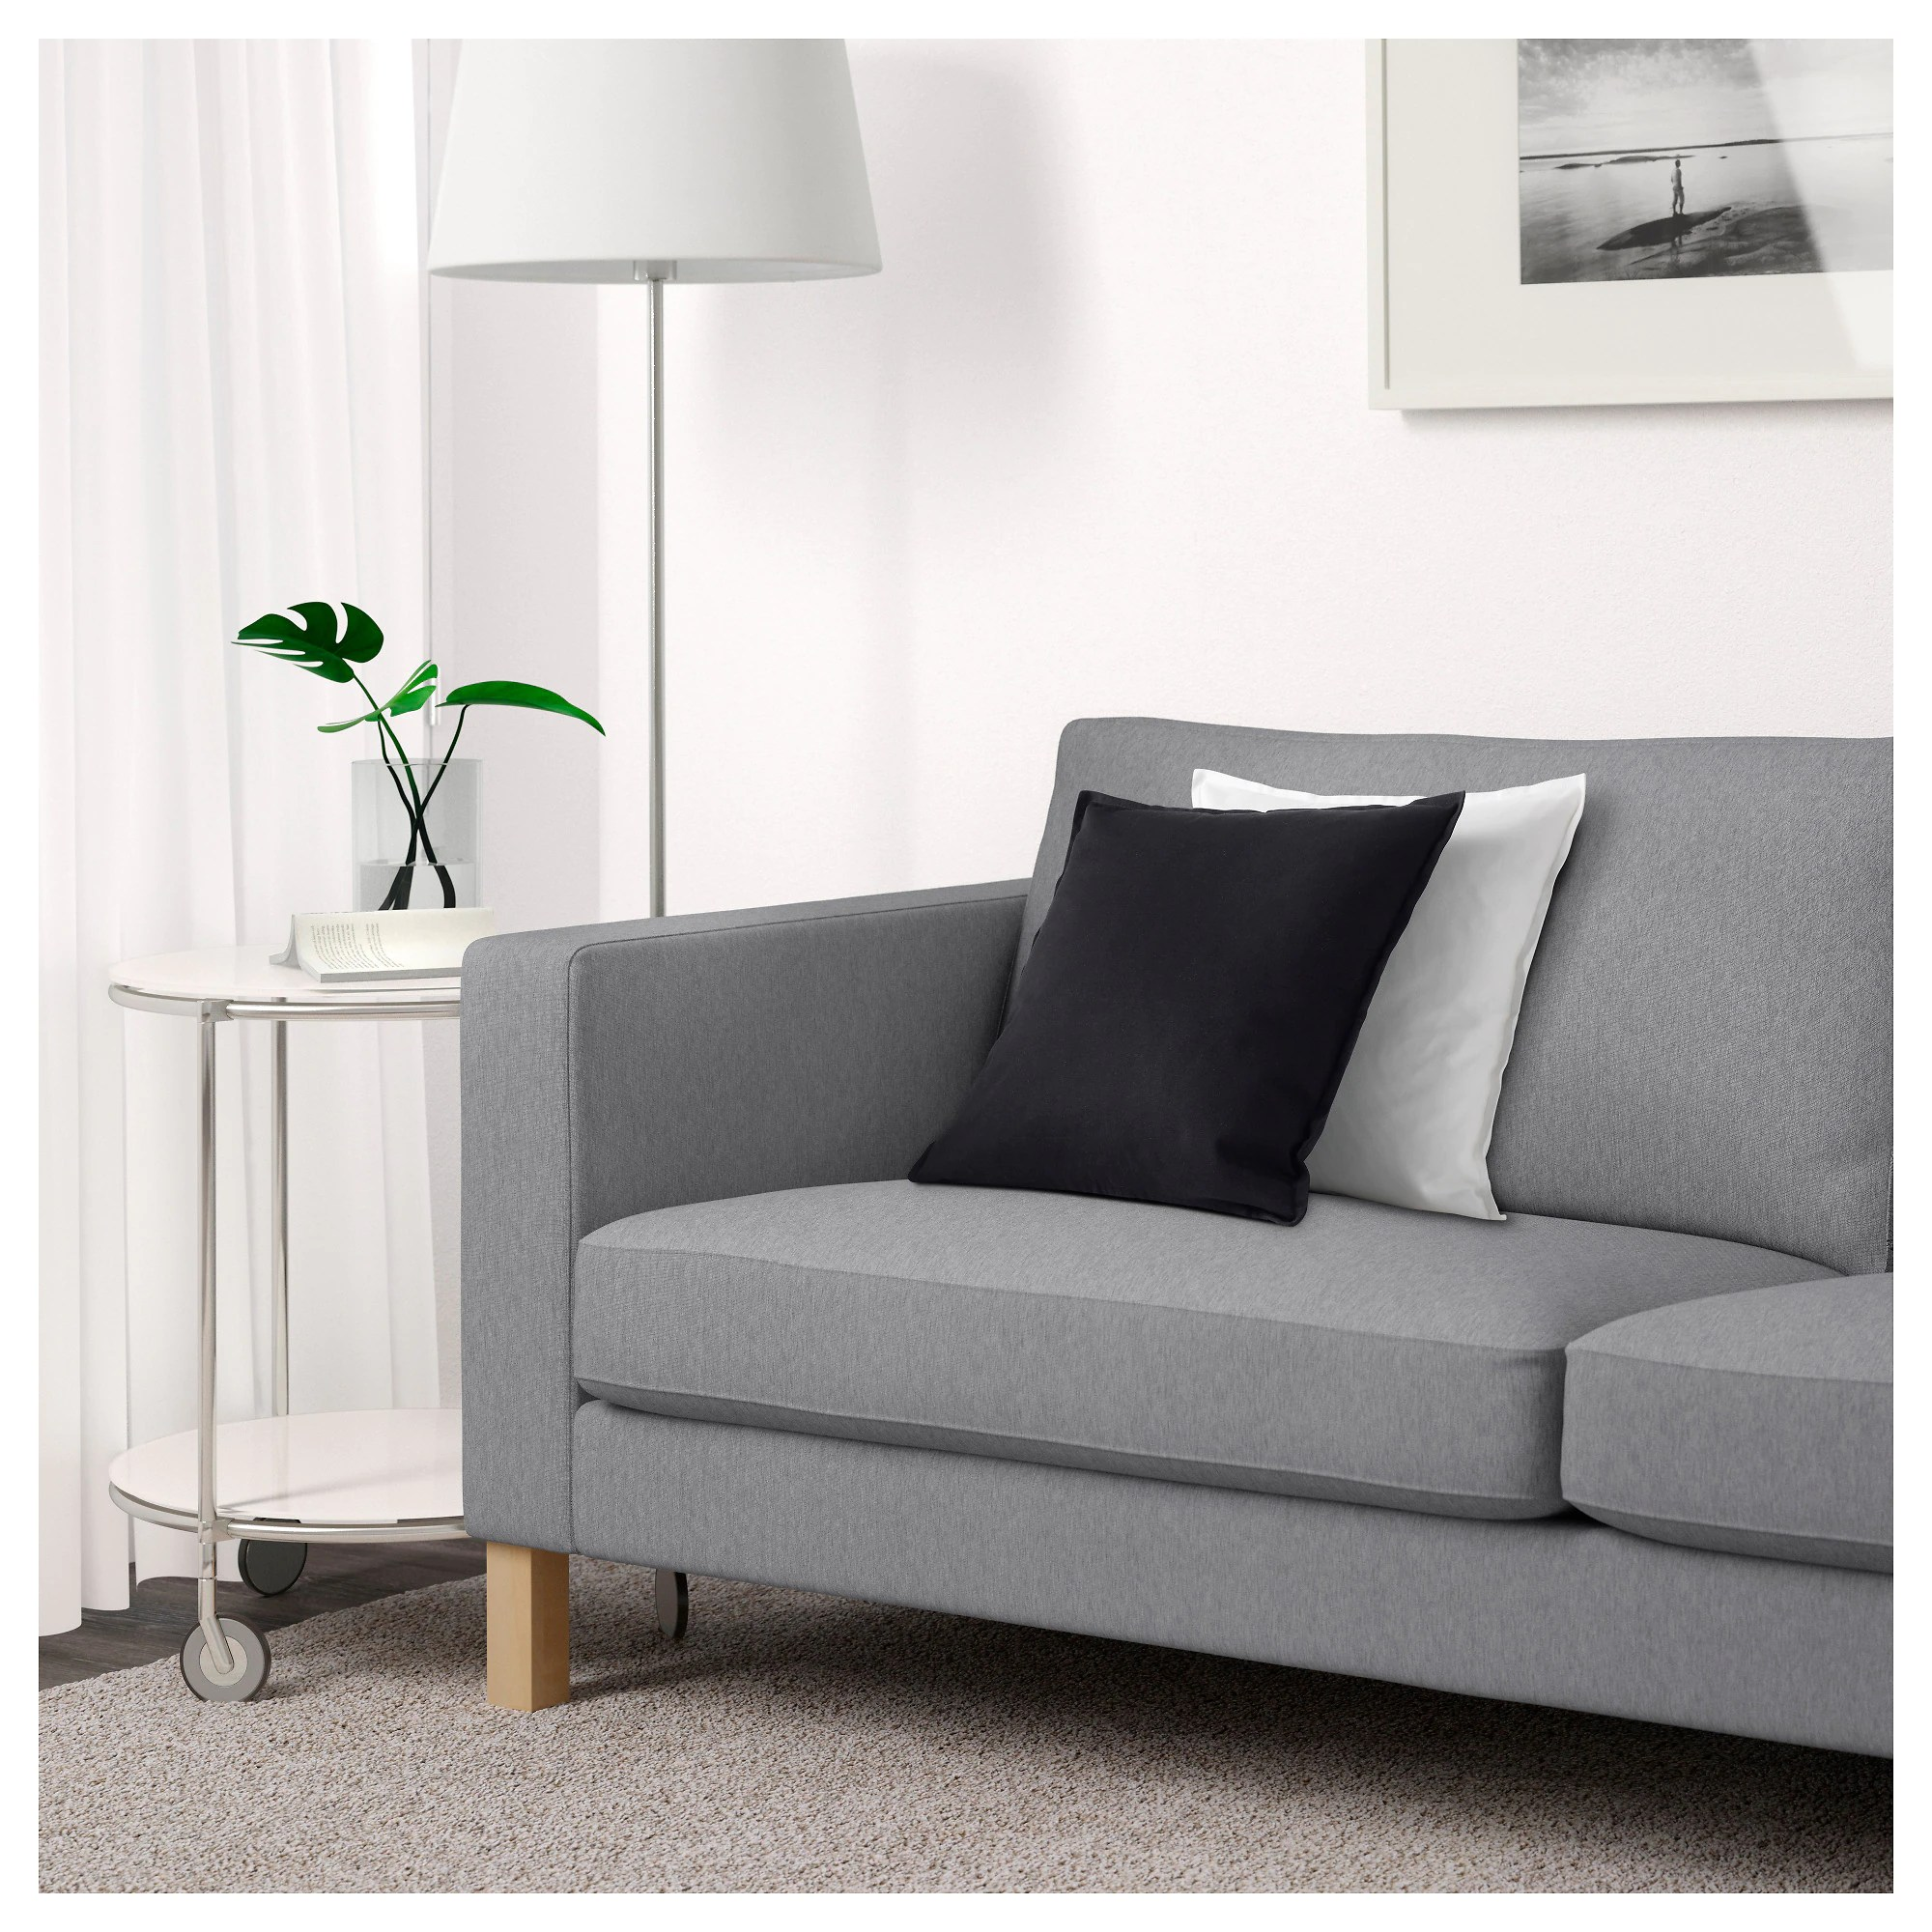 Next Sofa Measurements Karlstad Sofa Knisa Light Gray